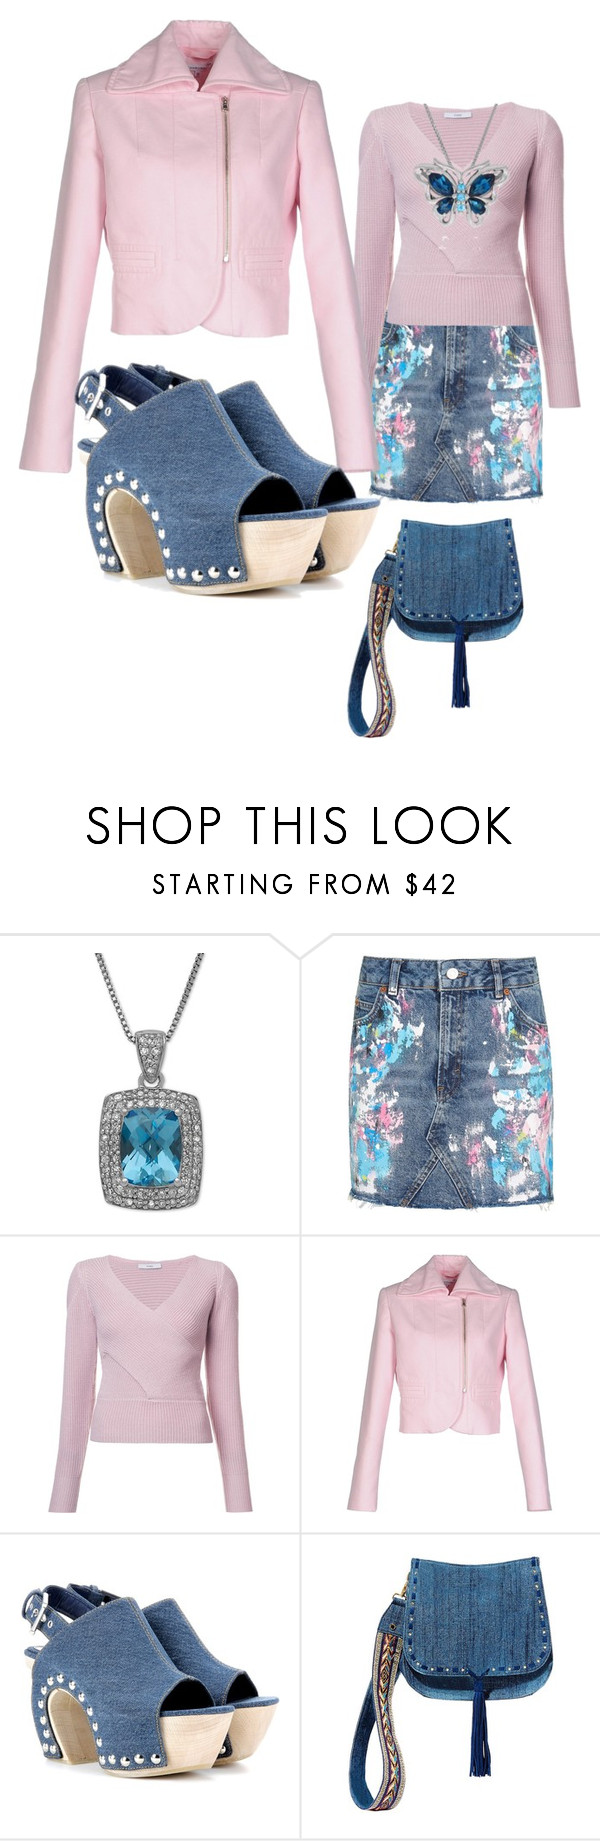 """Pink n Blue"" by angeladt-1 ❤ liked on Polyvore featuring Topshop, Tome, Carven, Alexander McQueen, Steve Madden and Belk & Co."